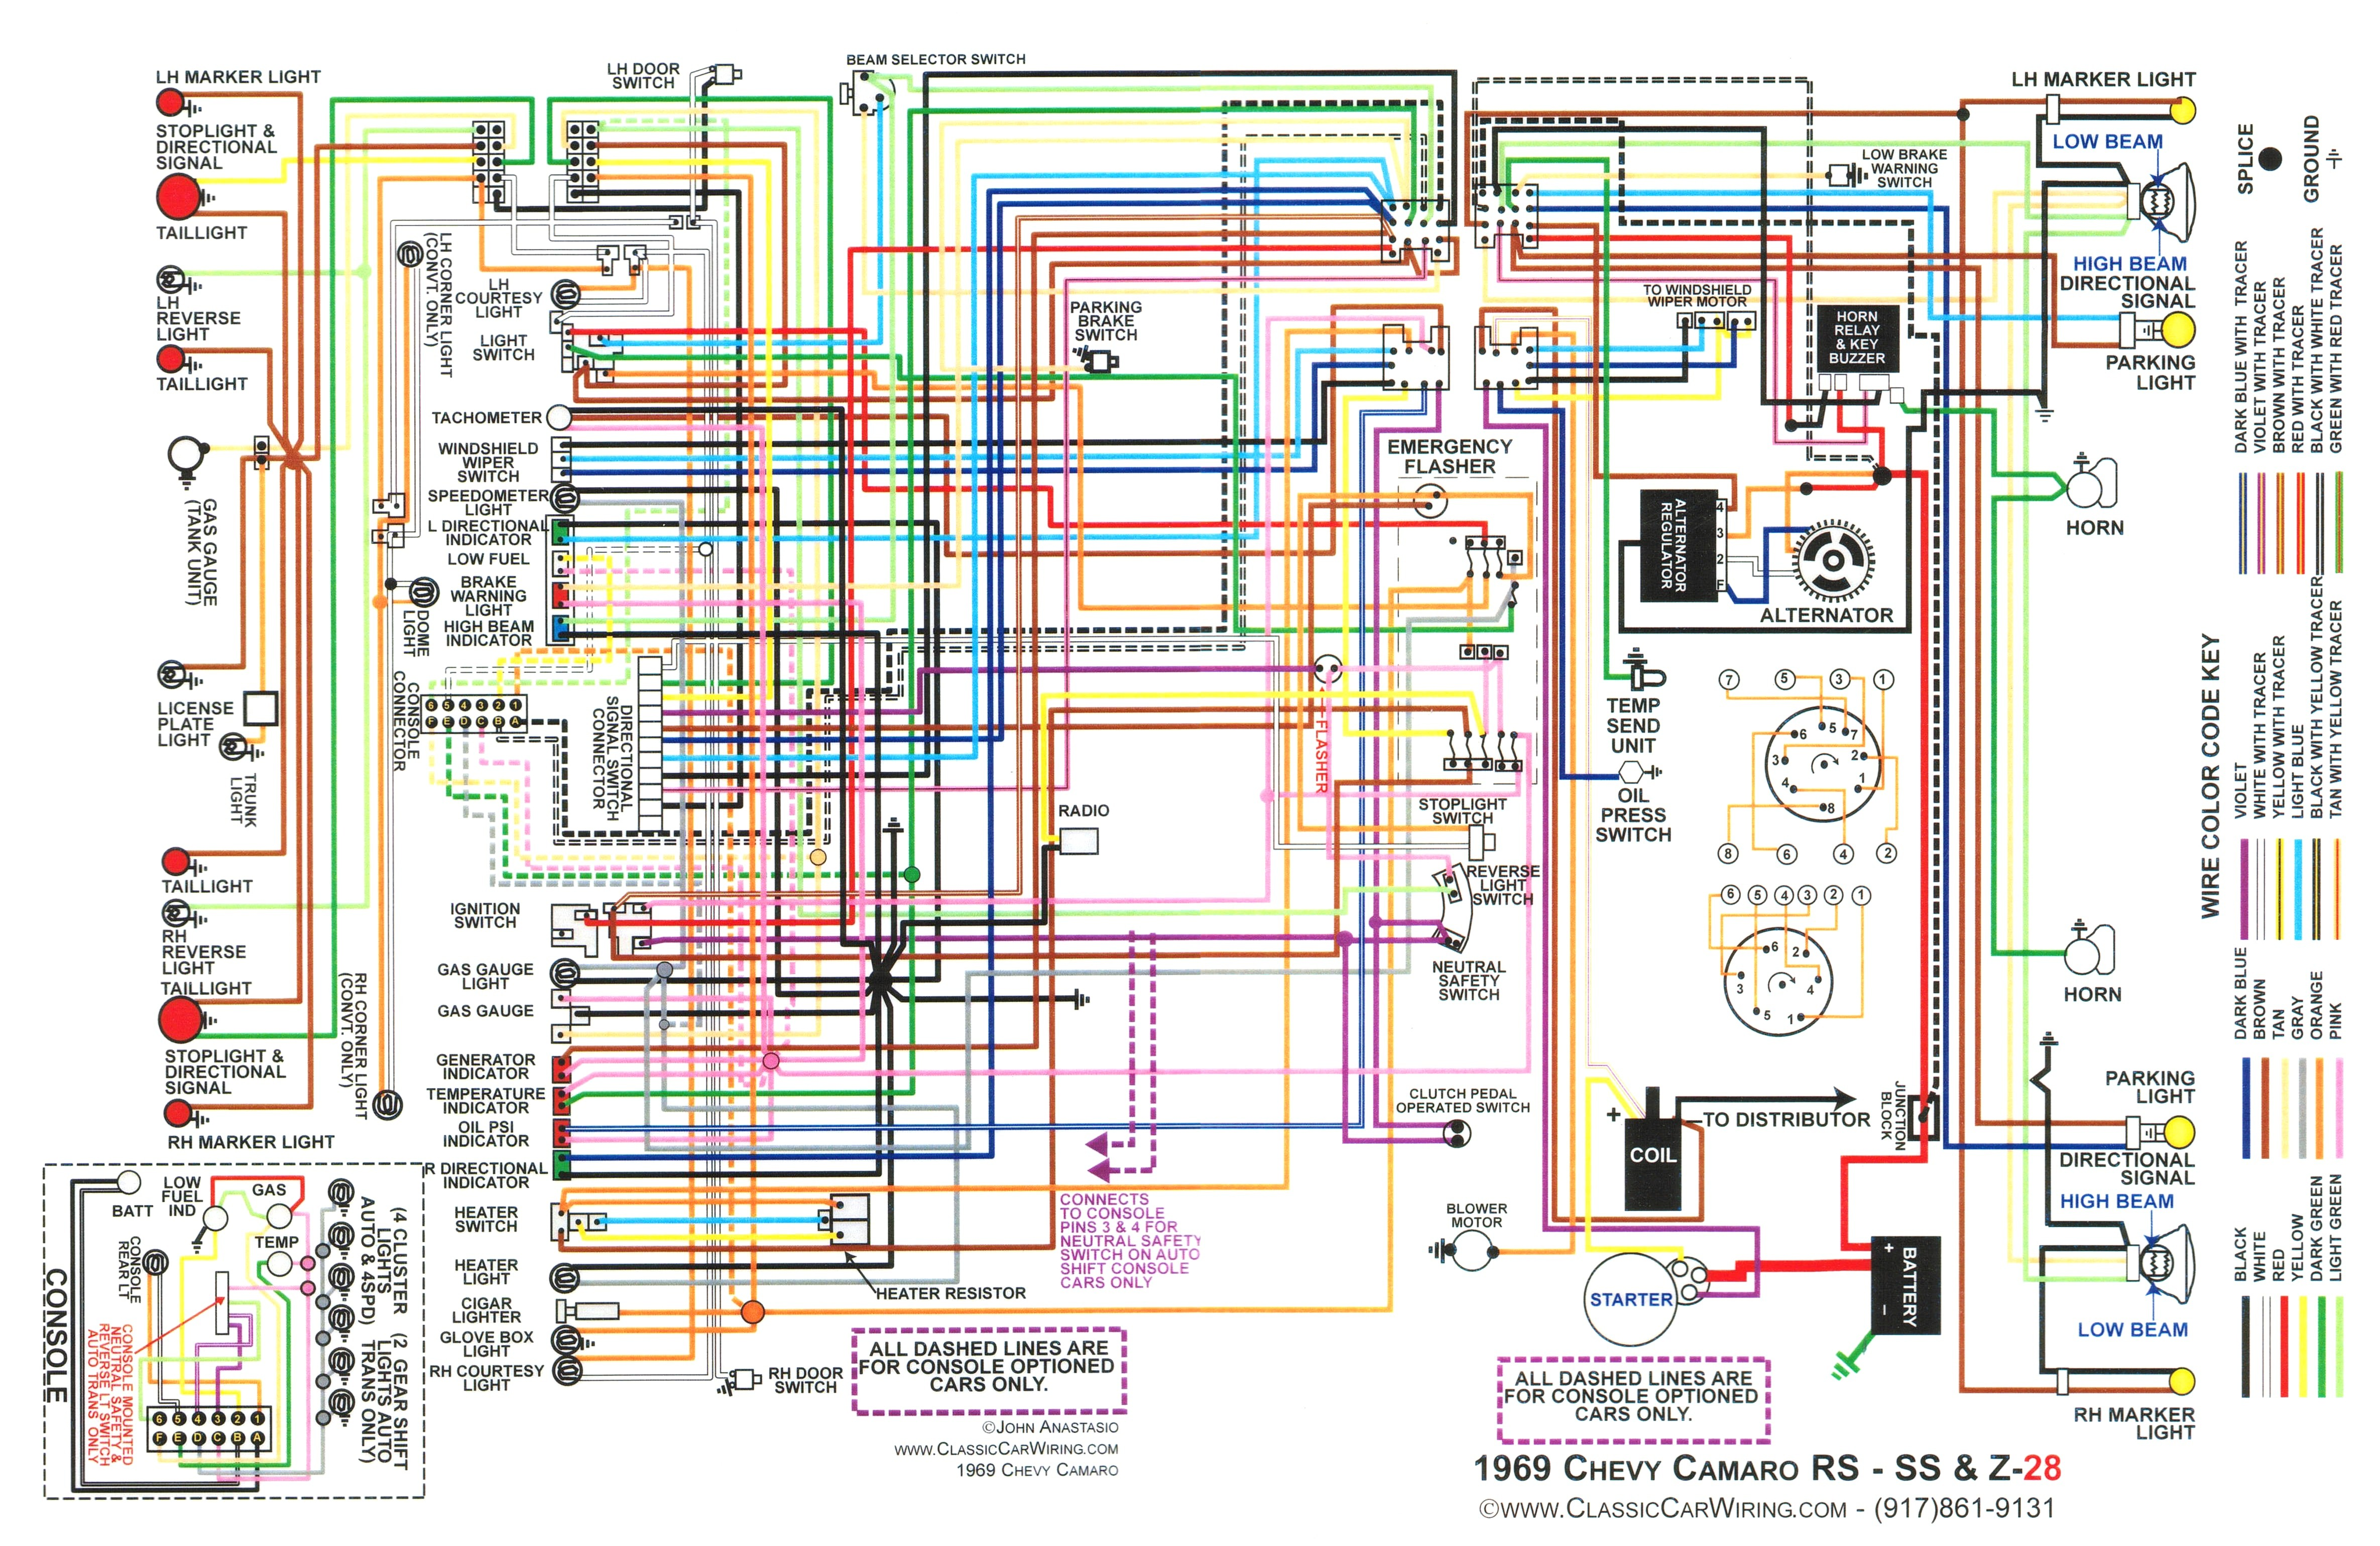 finn wiring diagrams wiring diagram04 dodge stratus wiring diagram live data wiring diagram04 dodge stratus wiring diagram live wiring library